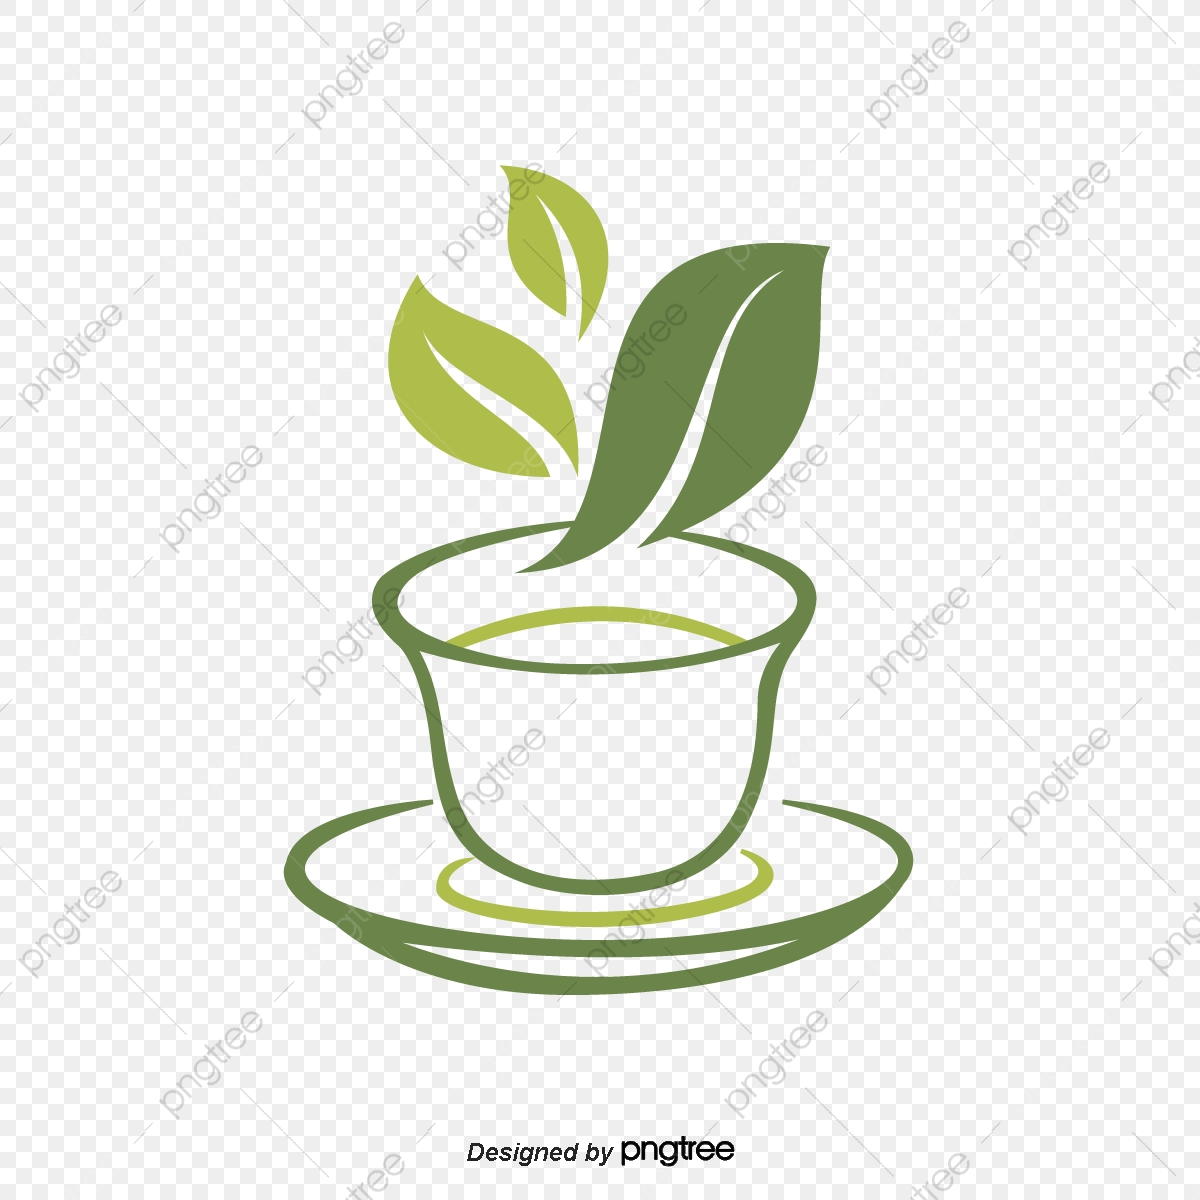 tea vector png free green tea tea cup milk tea vector images pngtree https pngtree com freepng fuding white tea tea vector material 2868711 html